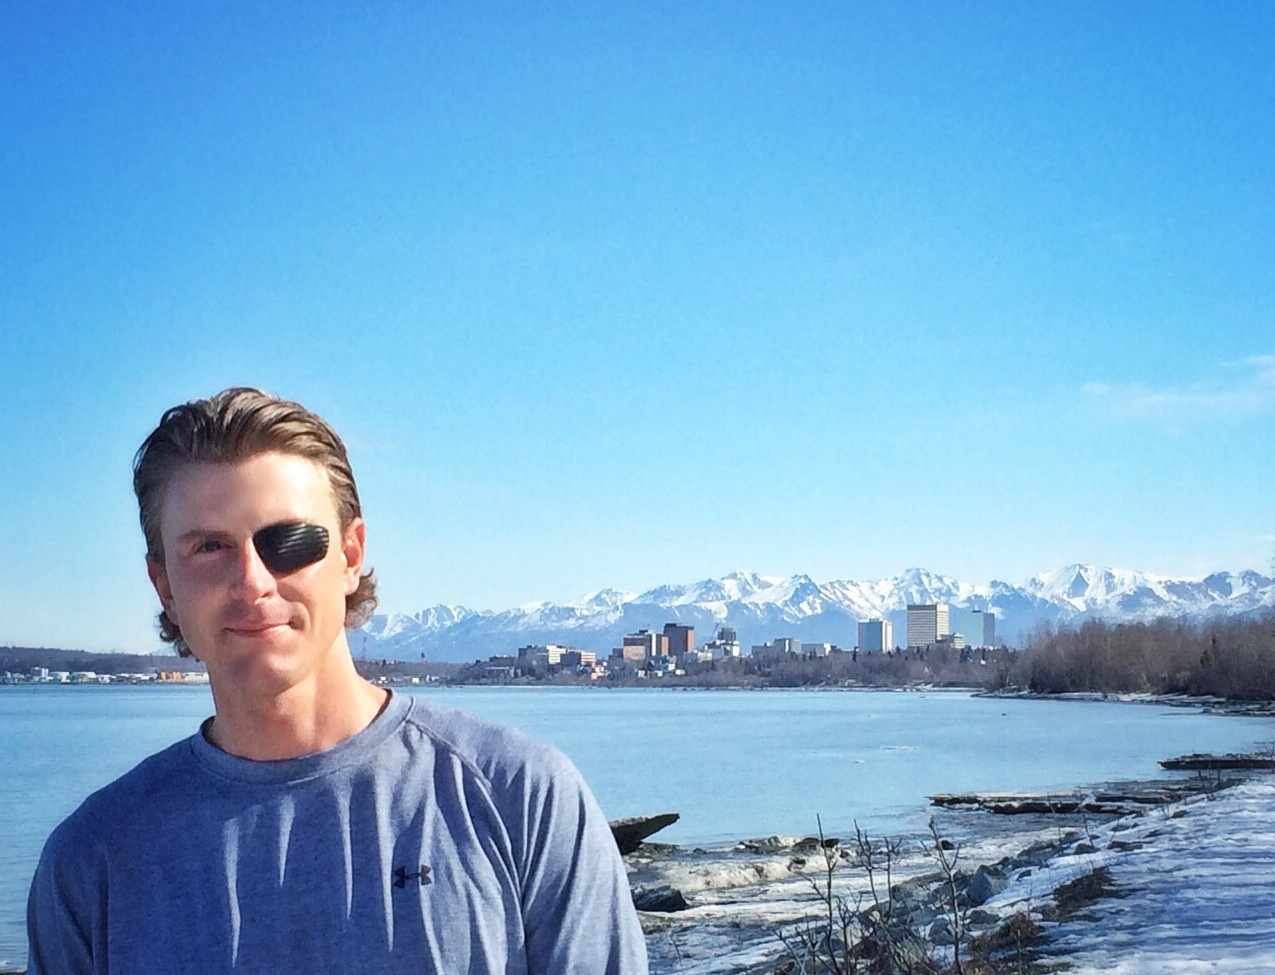 Anchorage in the background